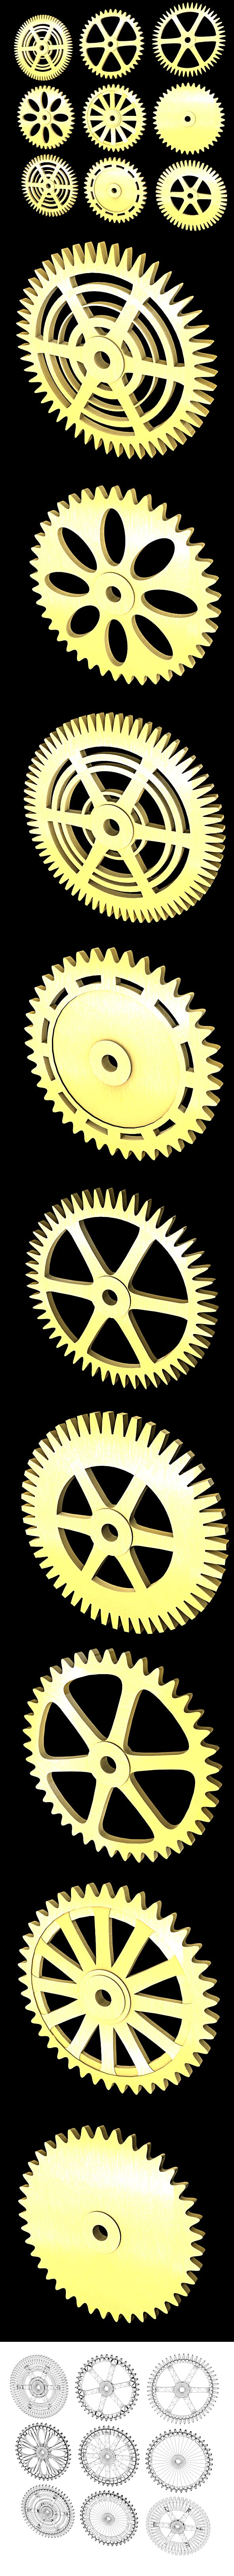 Different gears 3D Models & 3D Printers - 3DOcean Item for Sale